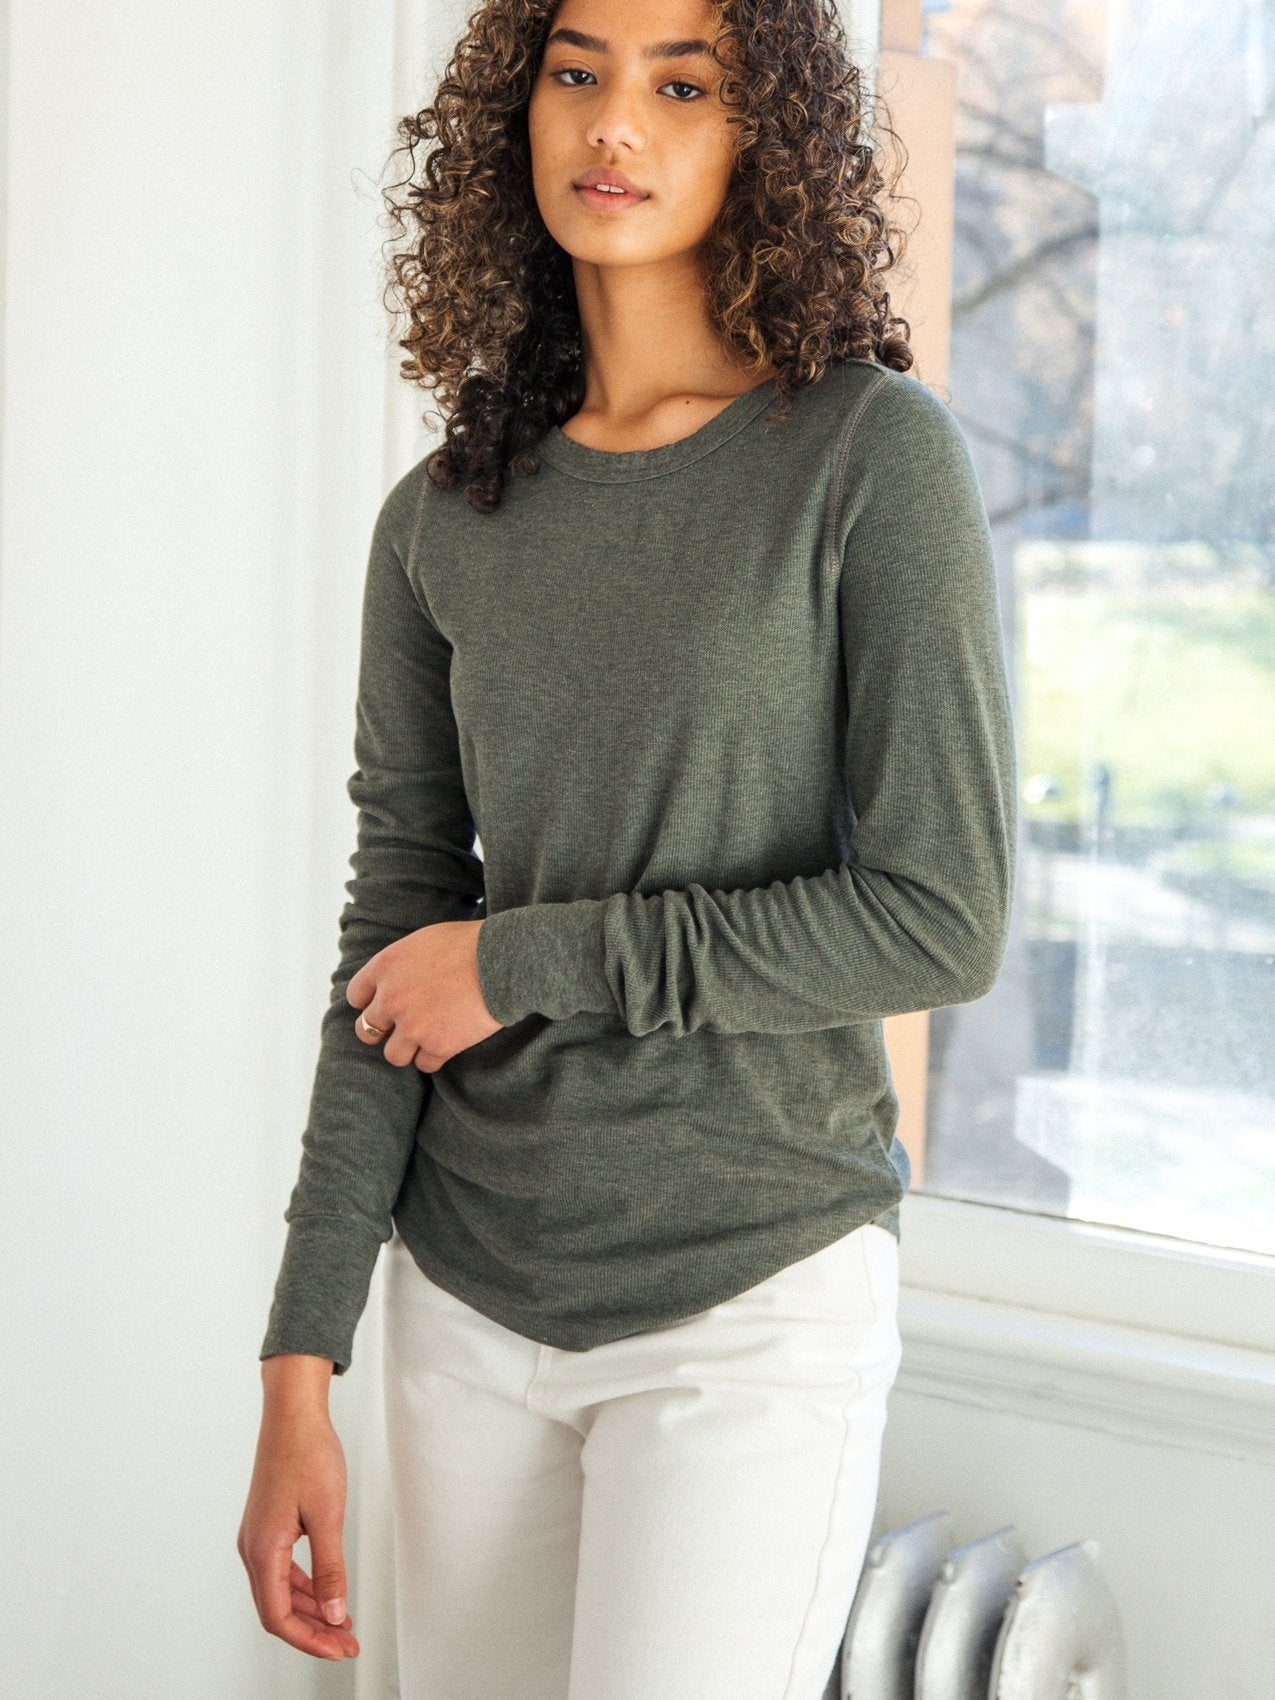 The Stacy Top in Eucalyptus